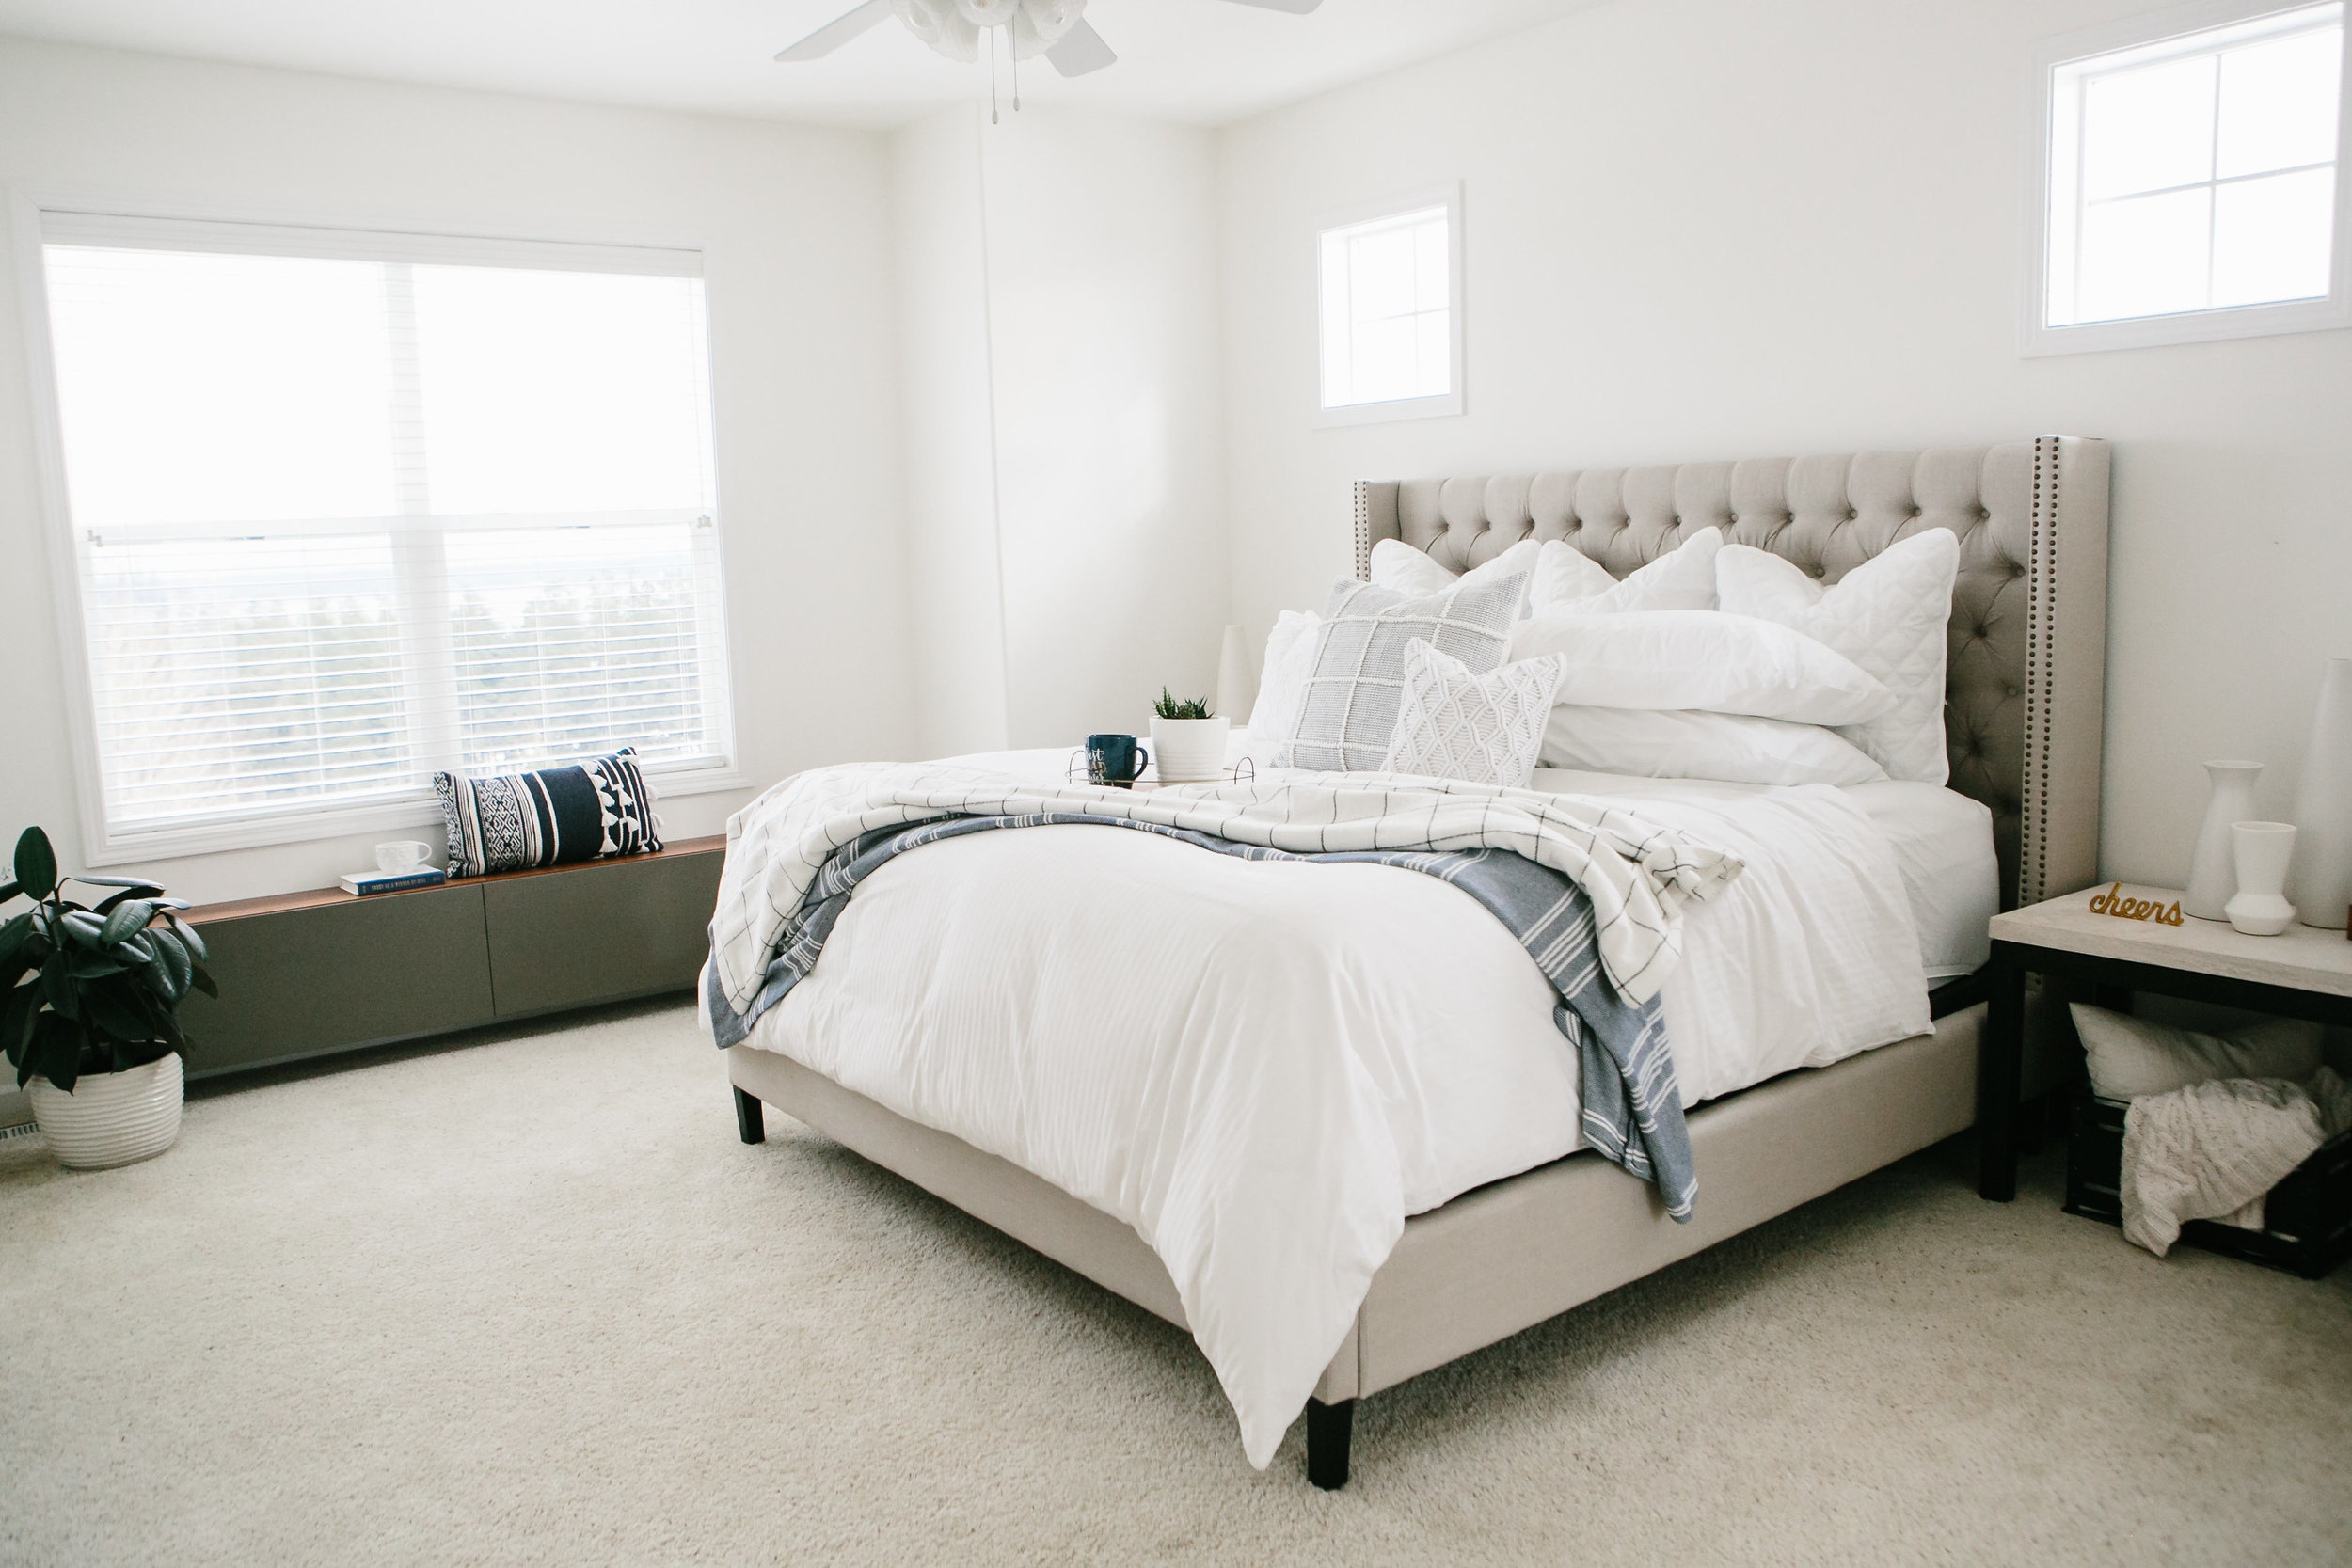 A clean transitional master bedroom with an upholstered headboard.